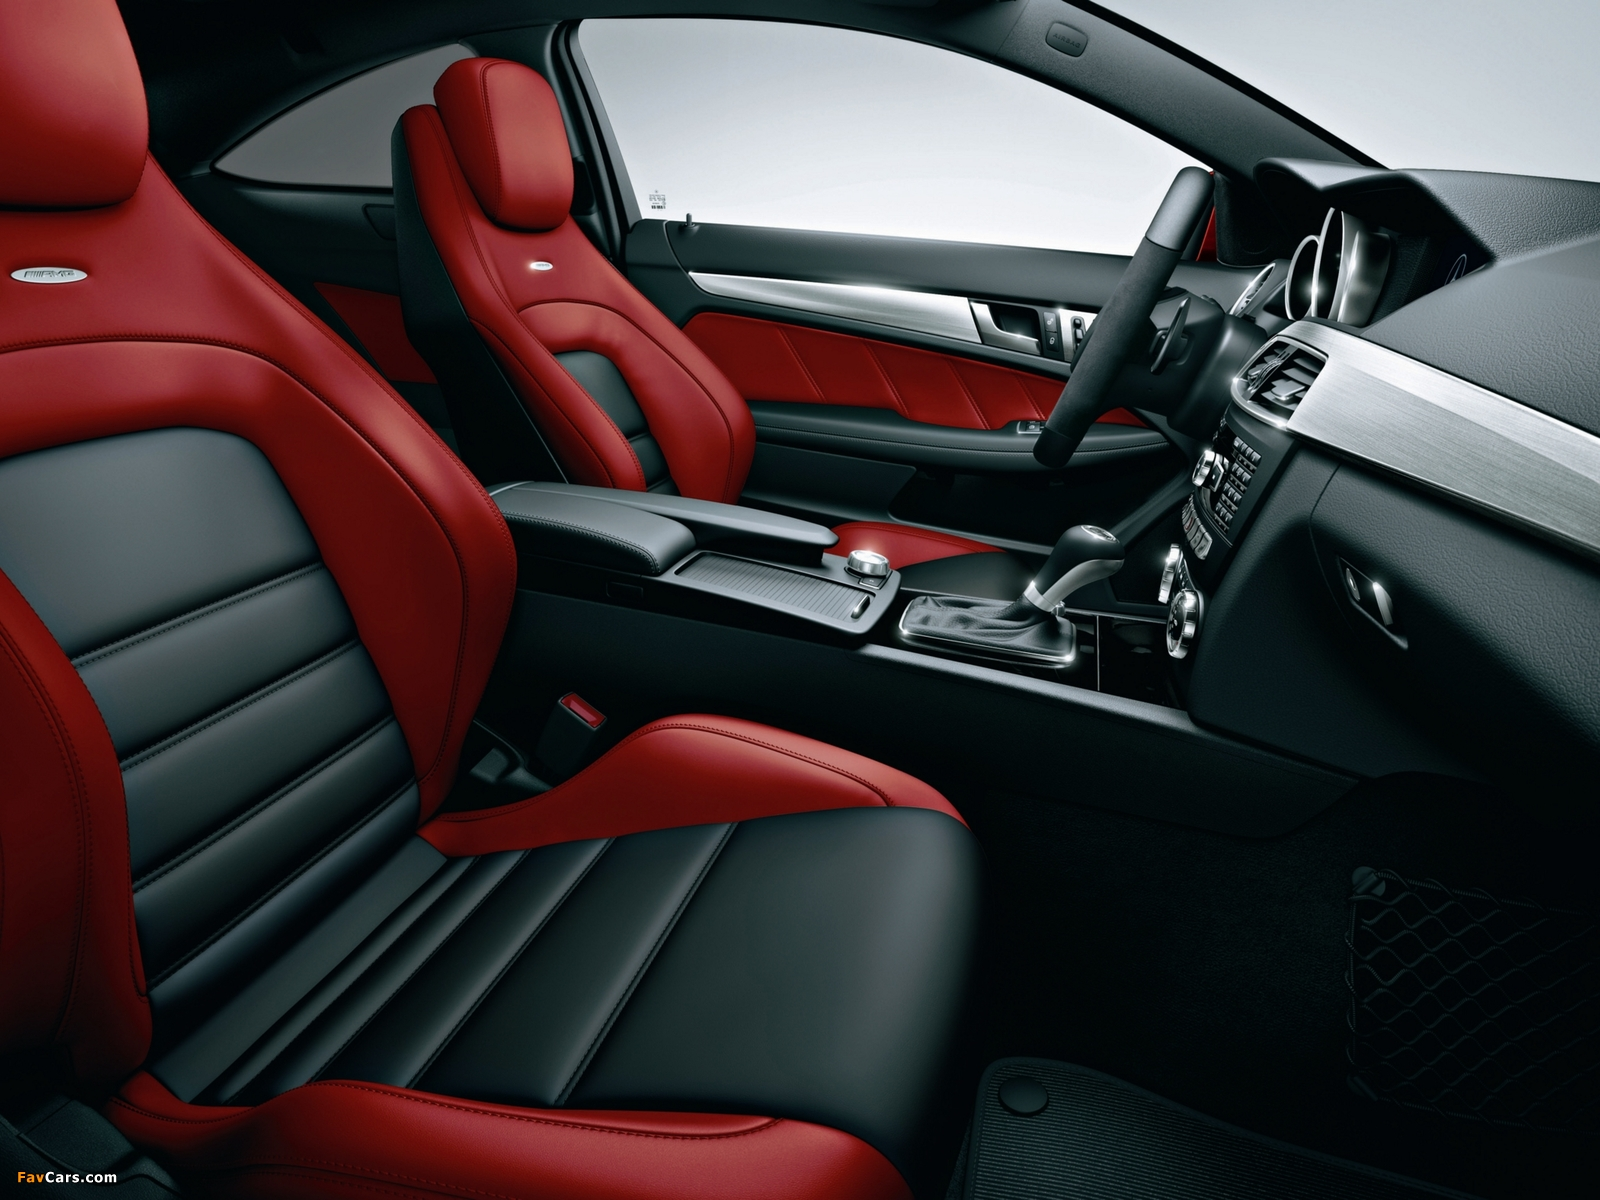 Mercedes-Benz C 63 AMG Limited Coupe (C204) 2013 wallpapers (1600 x 1200)